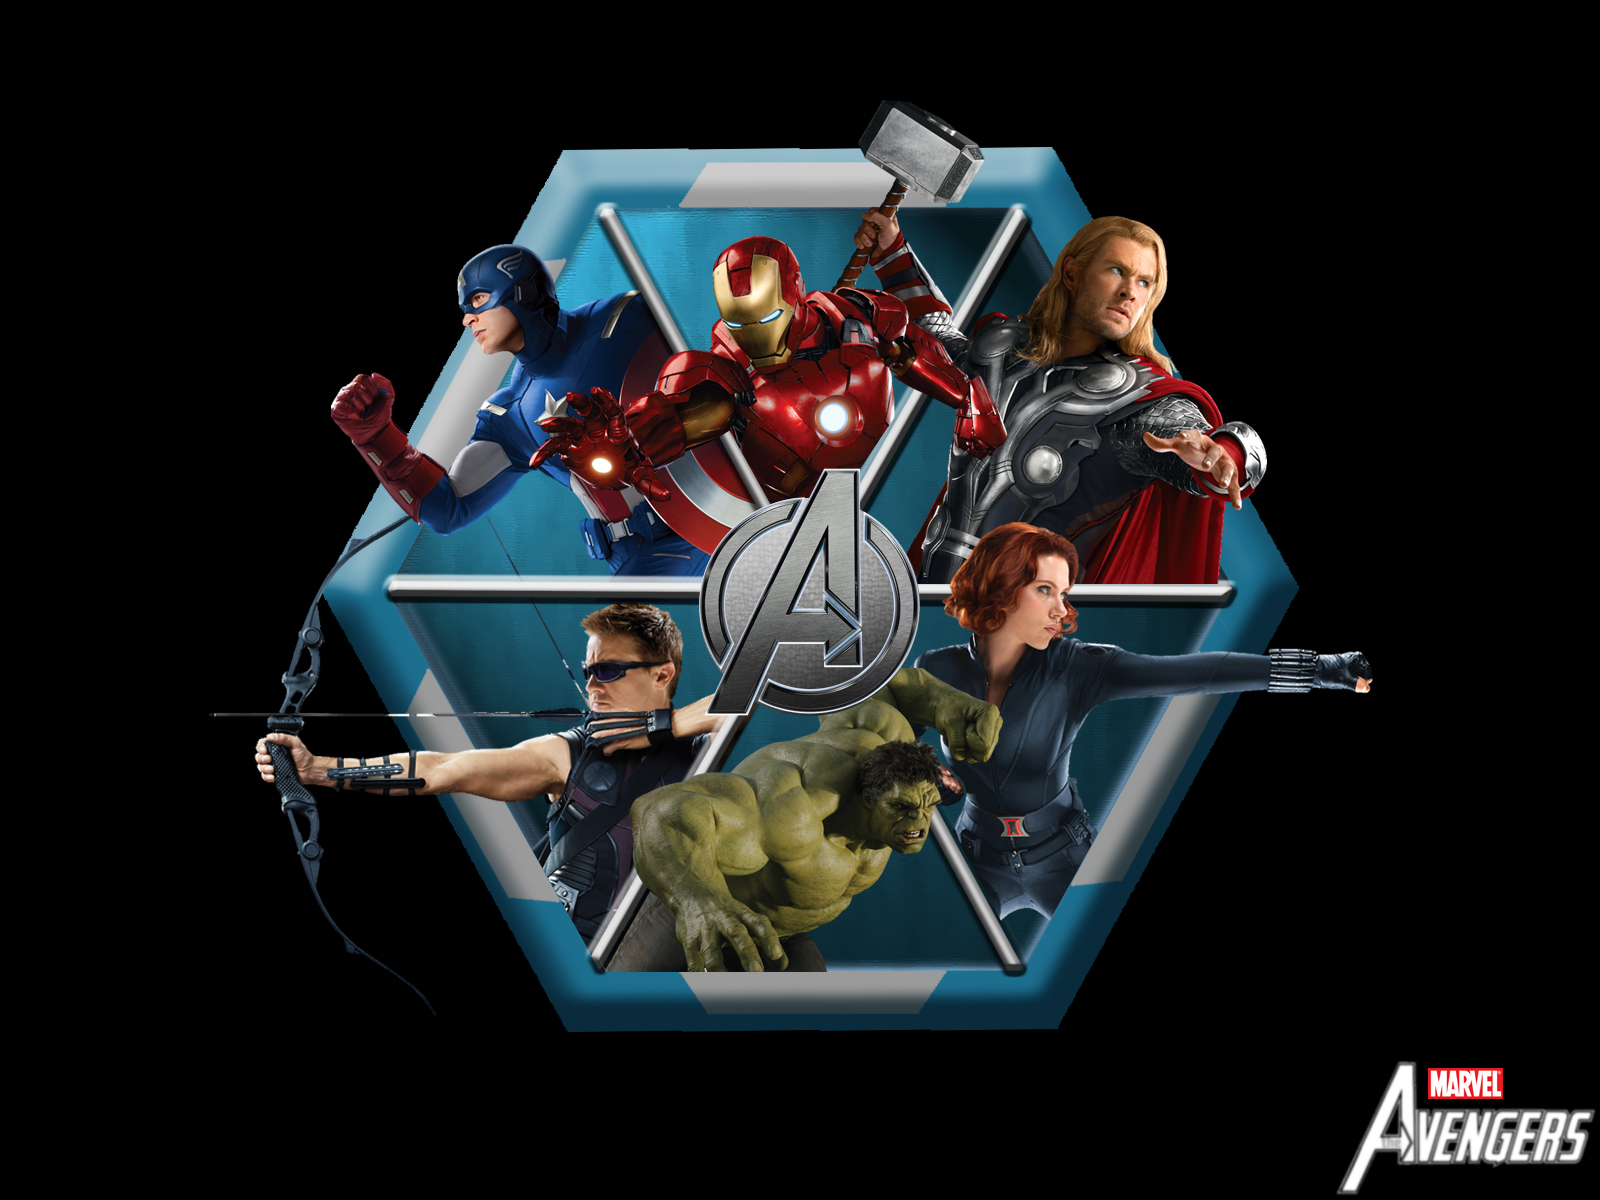 Avengers logo Cartoon HD Wallpaper